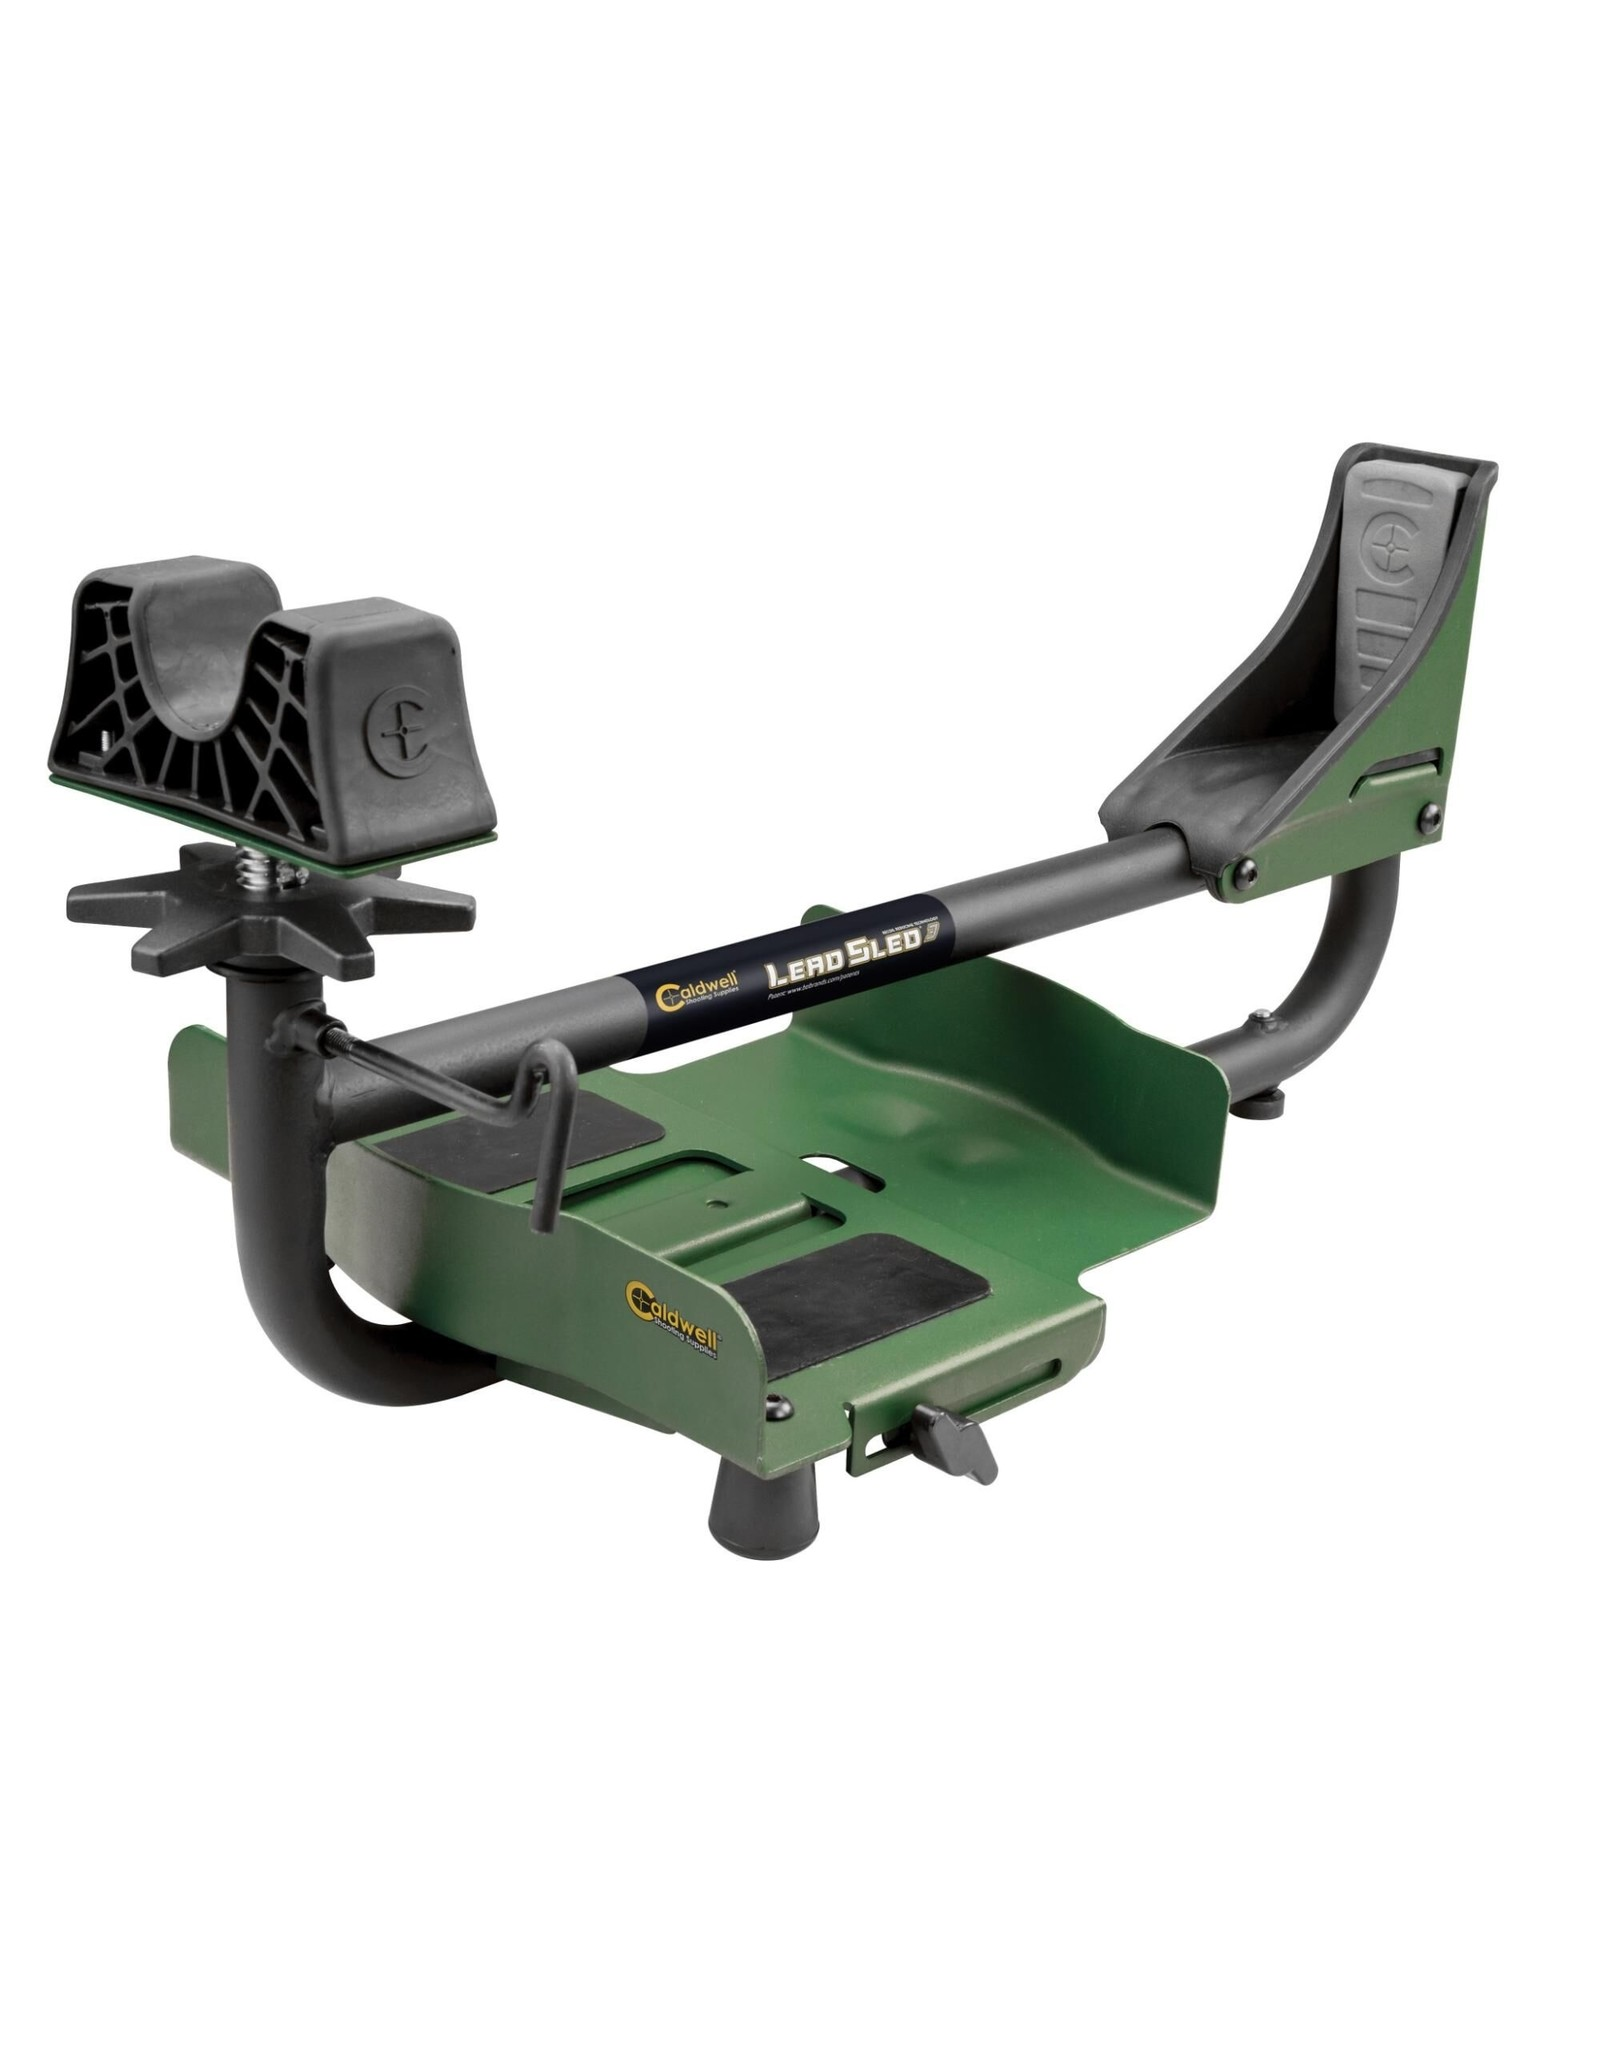 Caldwell Caldwell Lead Sled 3 Shooting Rest